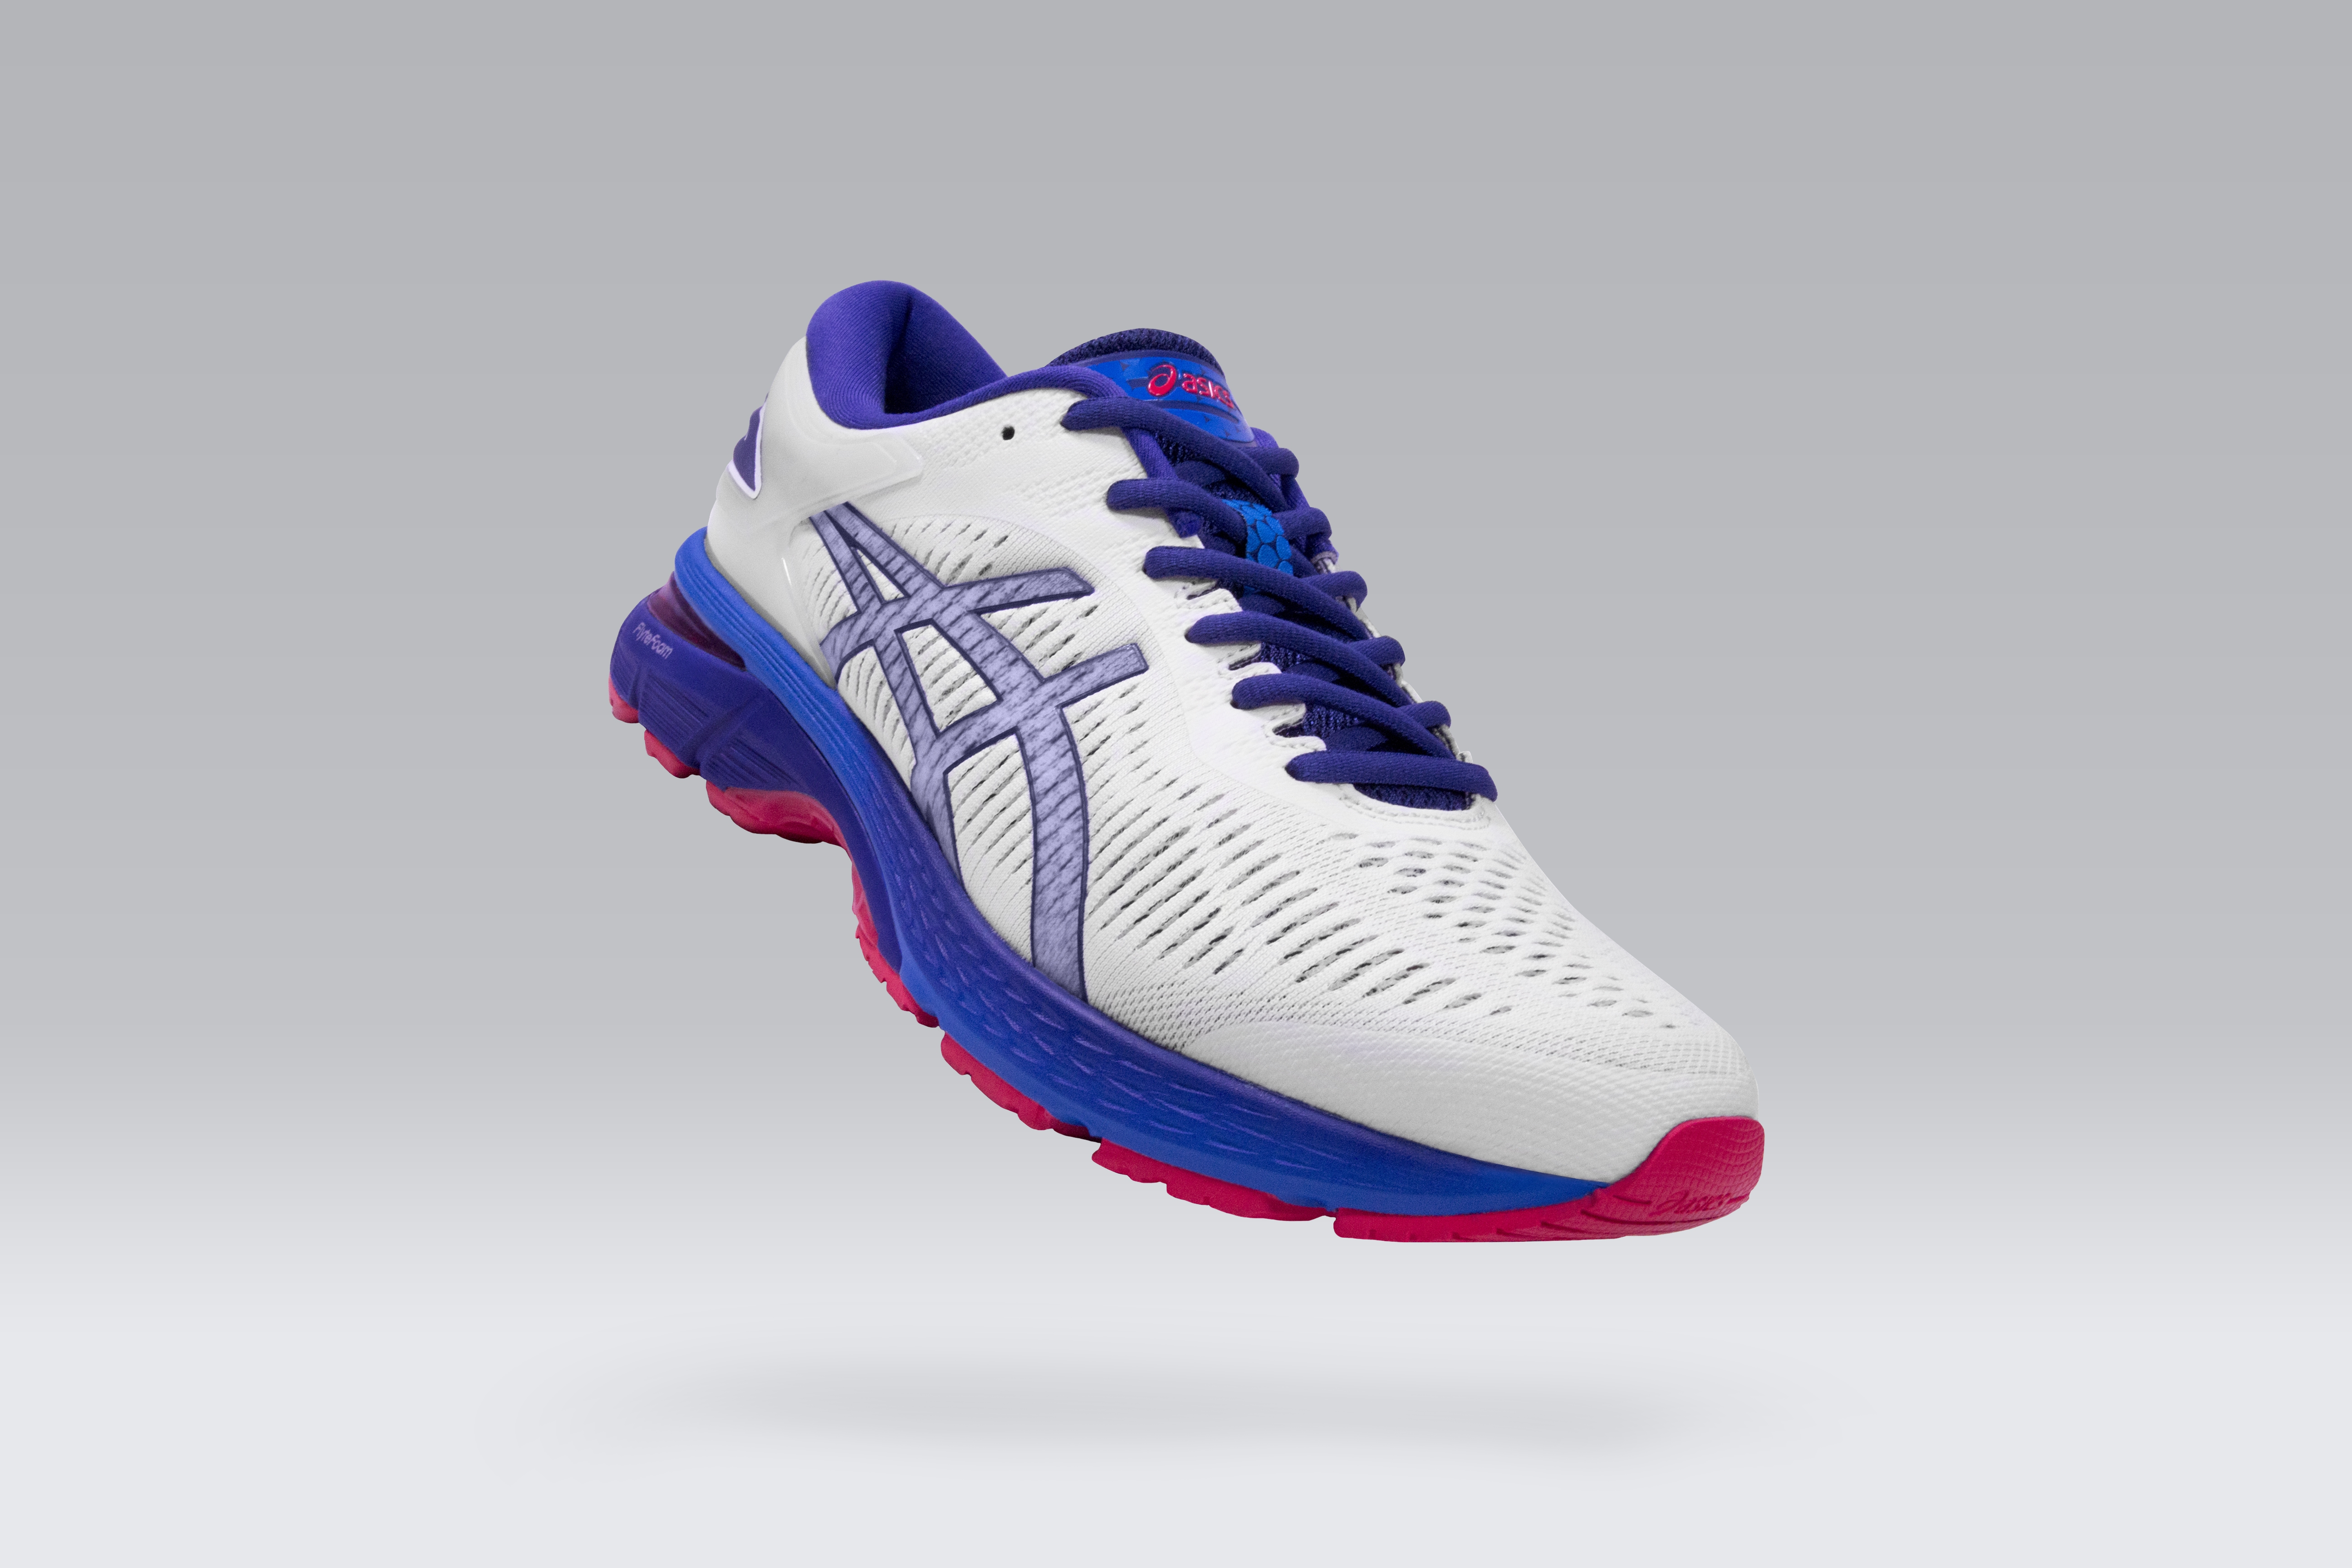 new asics shoes 2018